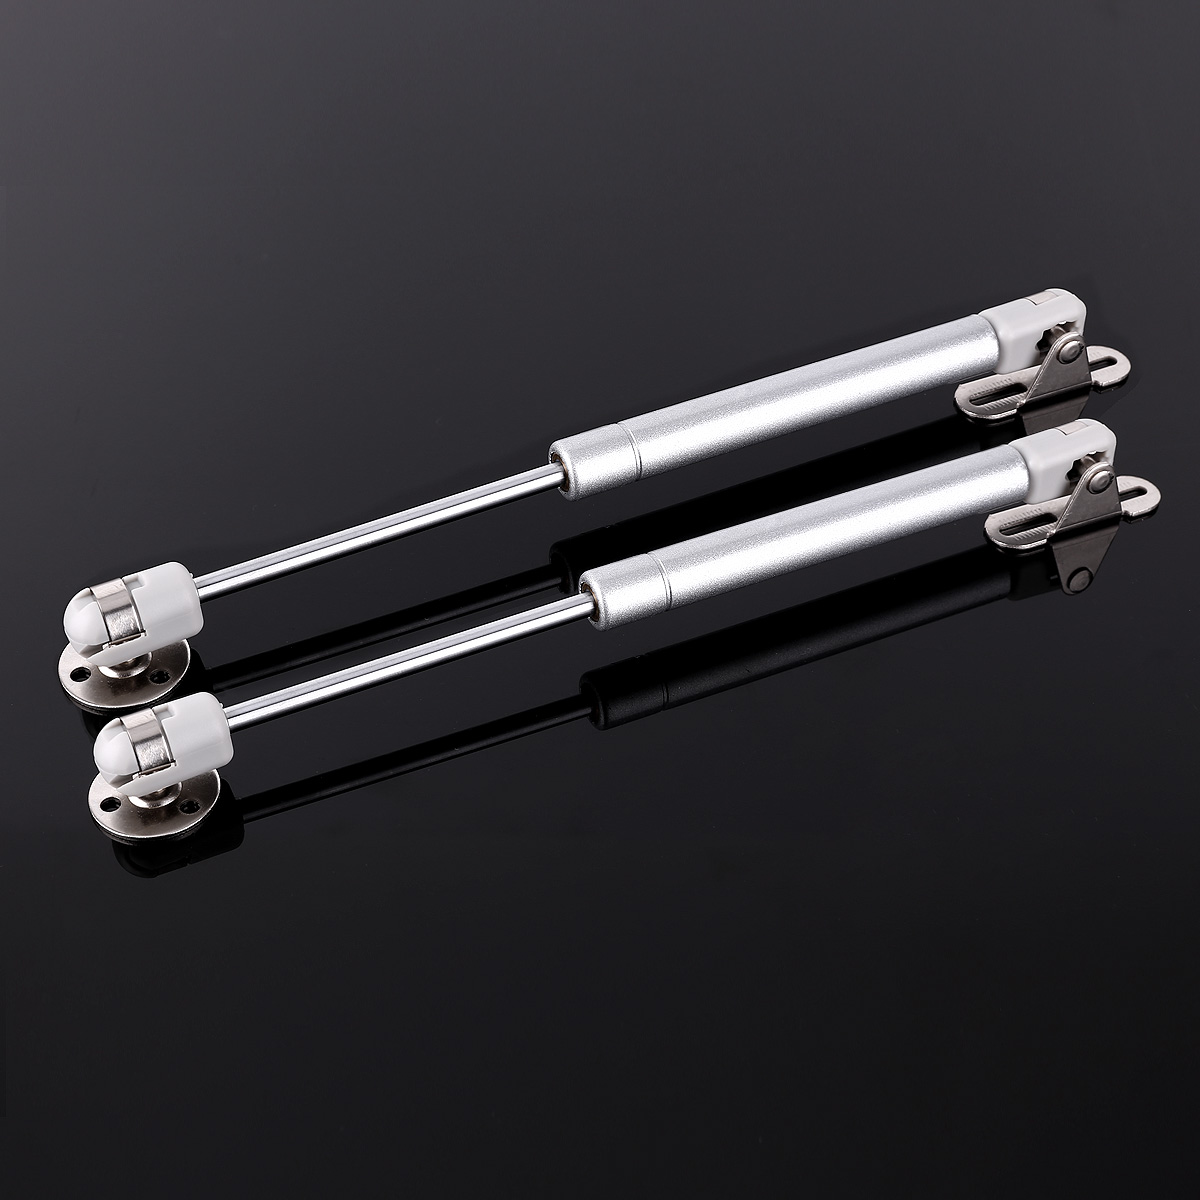 Hydraulic Lift Lid : Topquality cabinet door lift up hydraulic gas spring lid